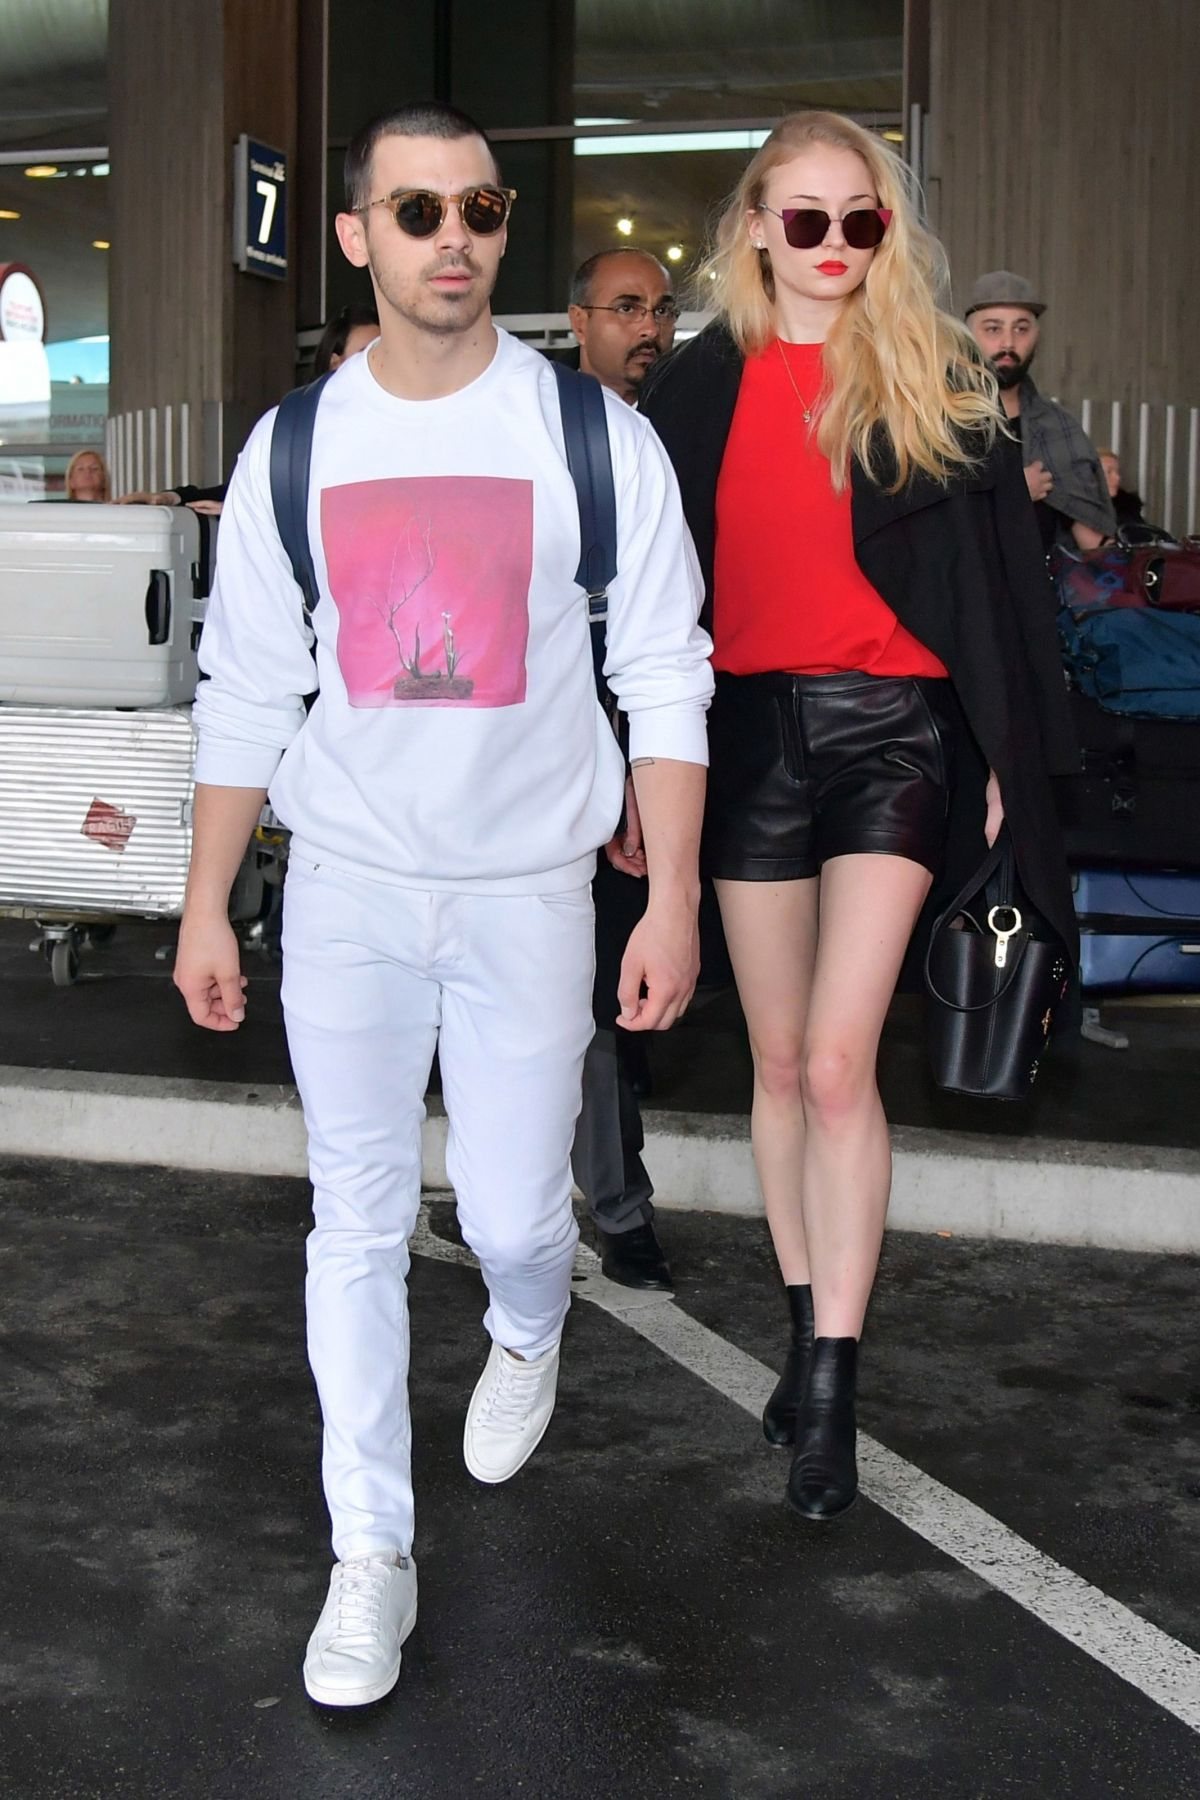 Image: Sophie Turner and Joe Jonas in Charles de Gaulle Airport?